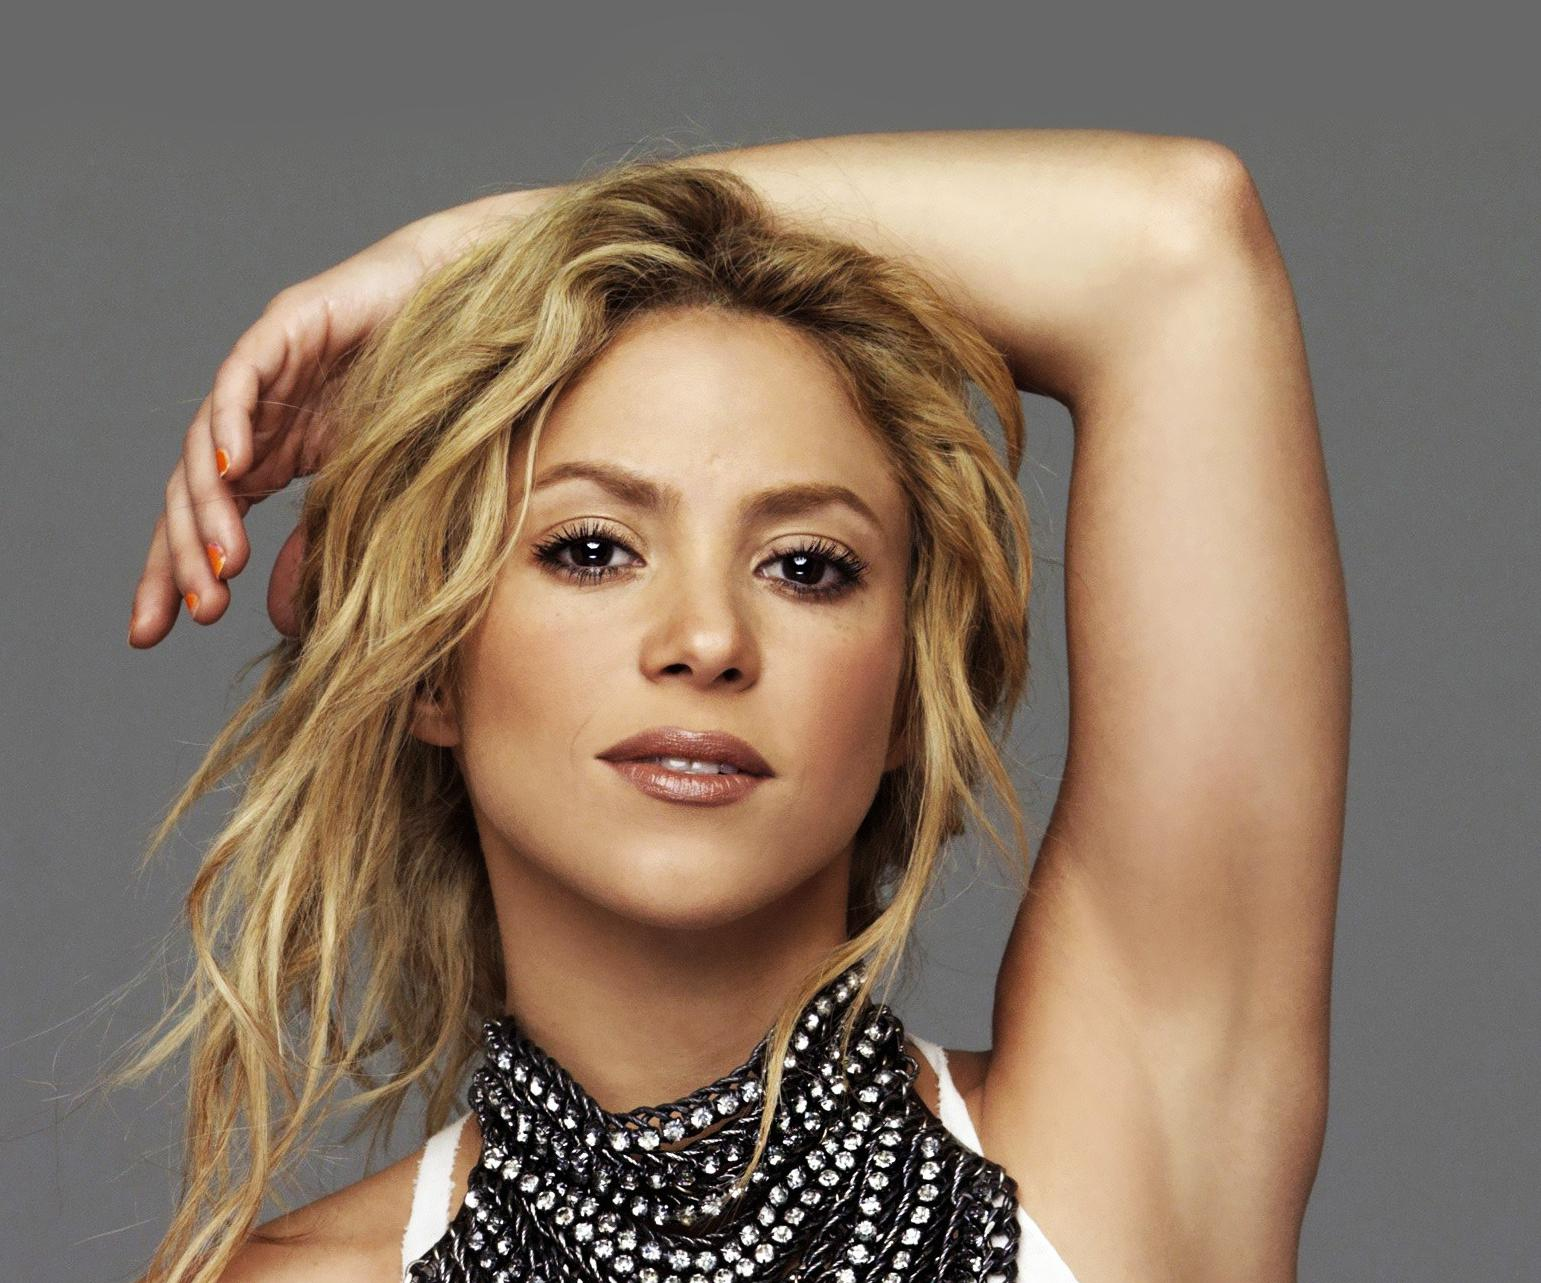 Gallery Pictures: Shakira different looks